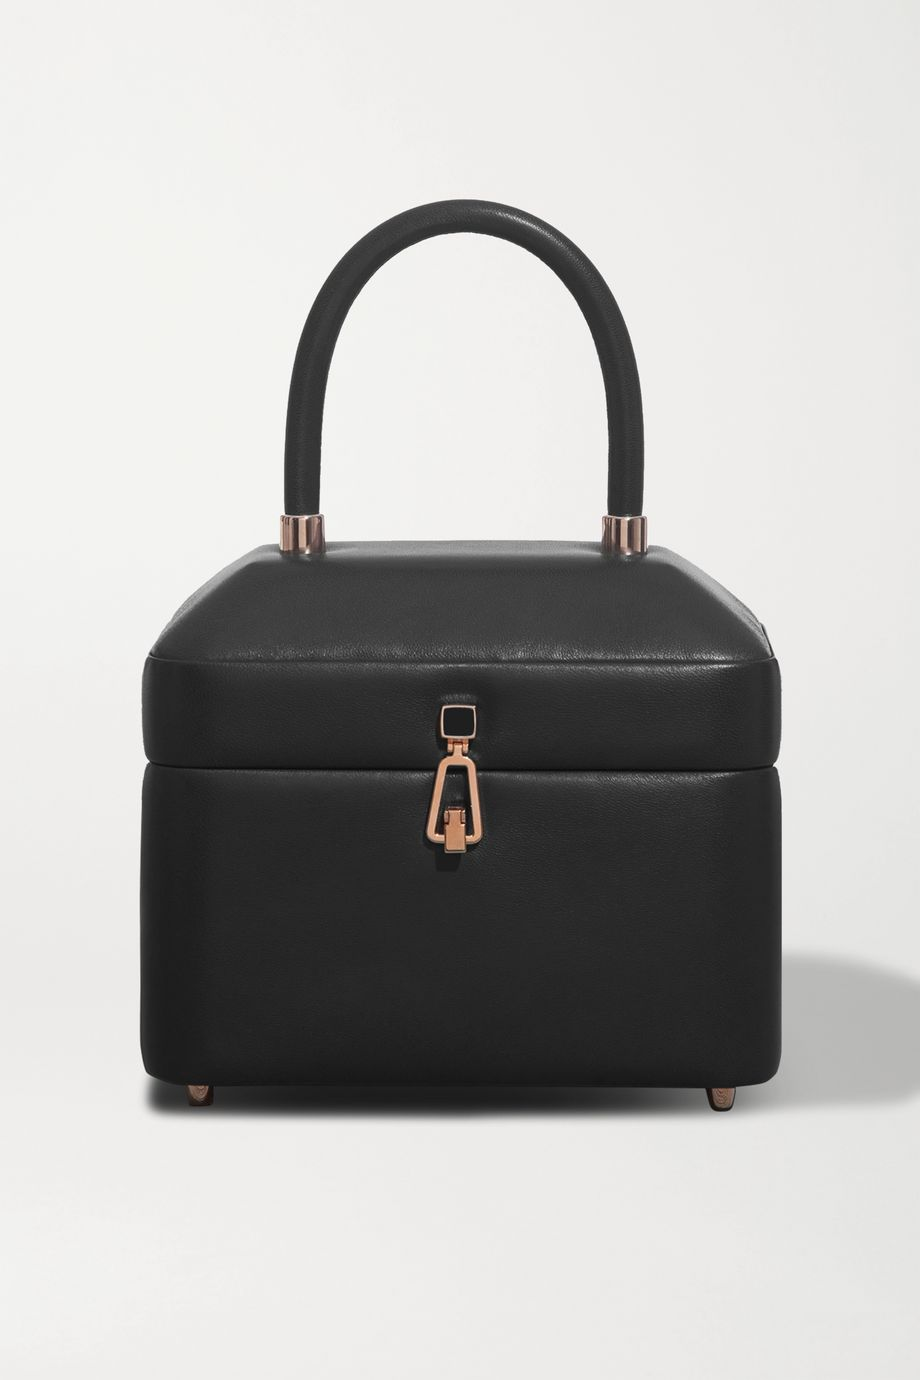 Gabriela Hearst Off To The Races leather tote